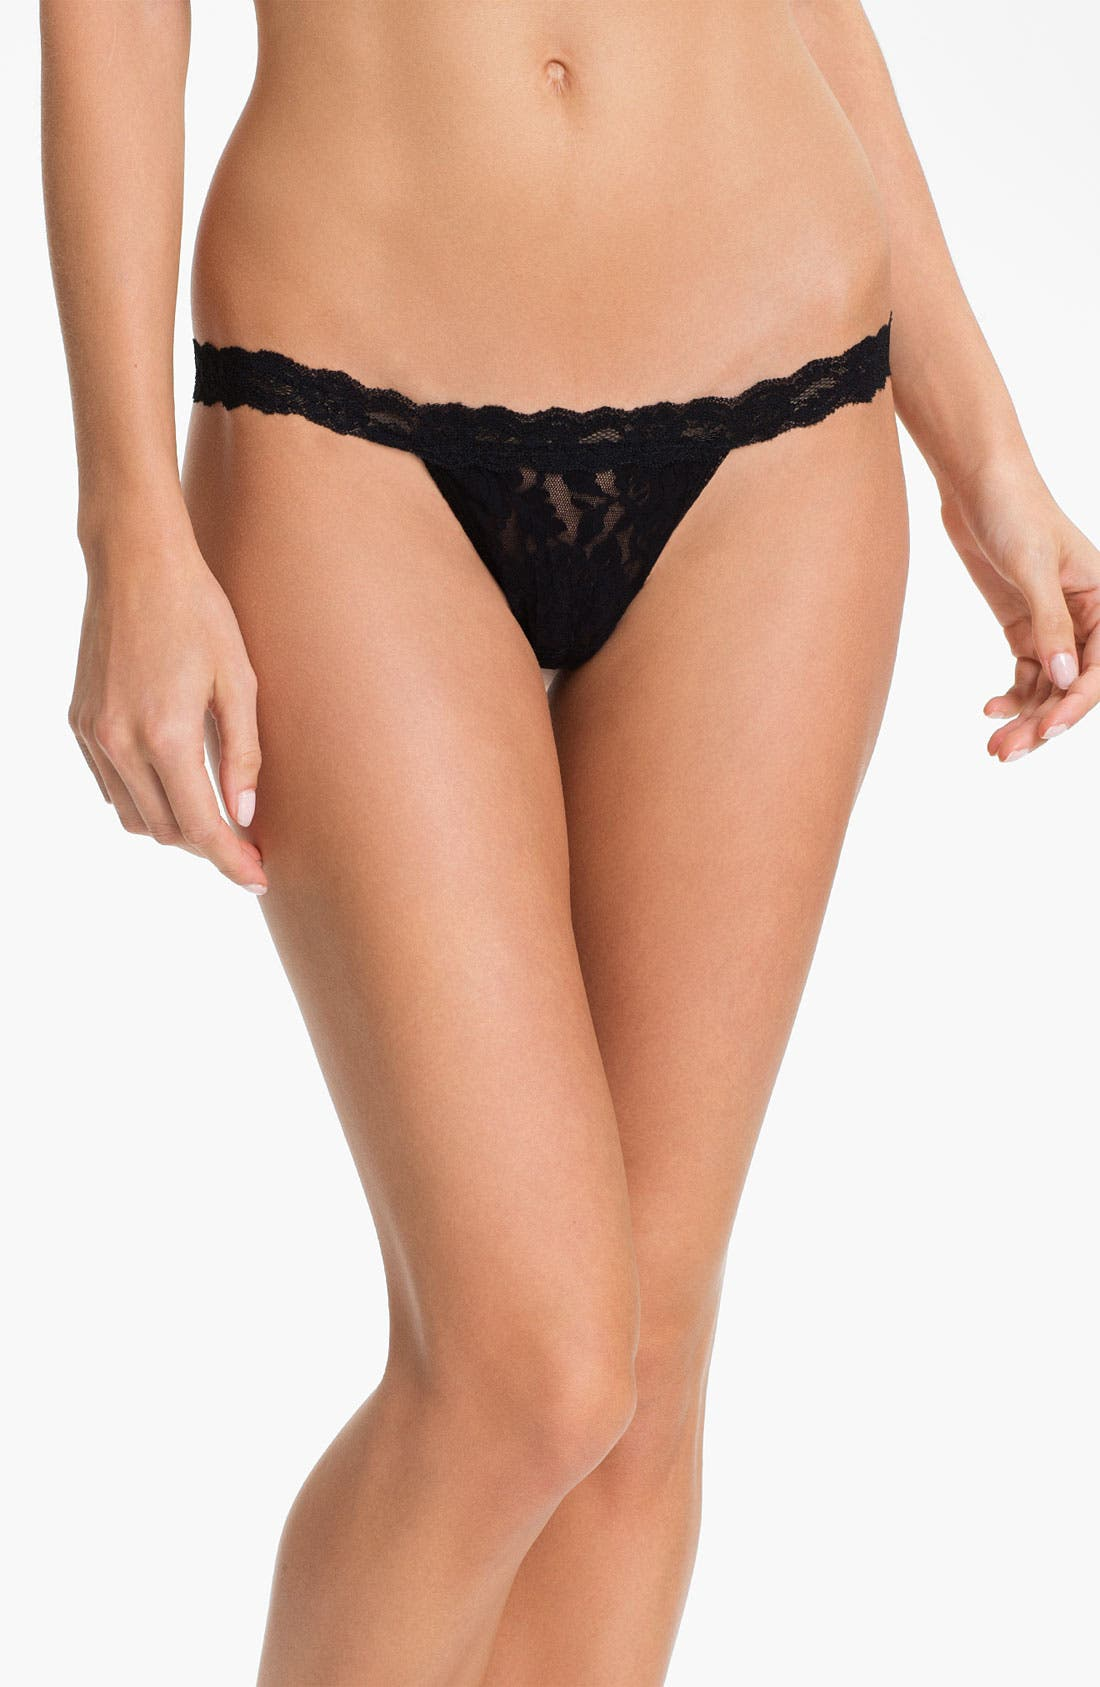 Alternate Image 1 Selected - Hanky Panky 'Signature Lace' Low Rise G-String